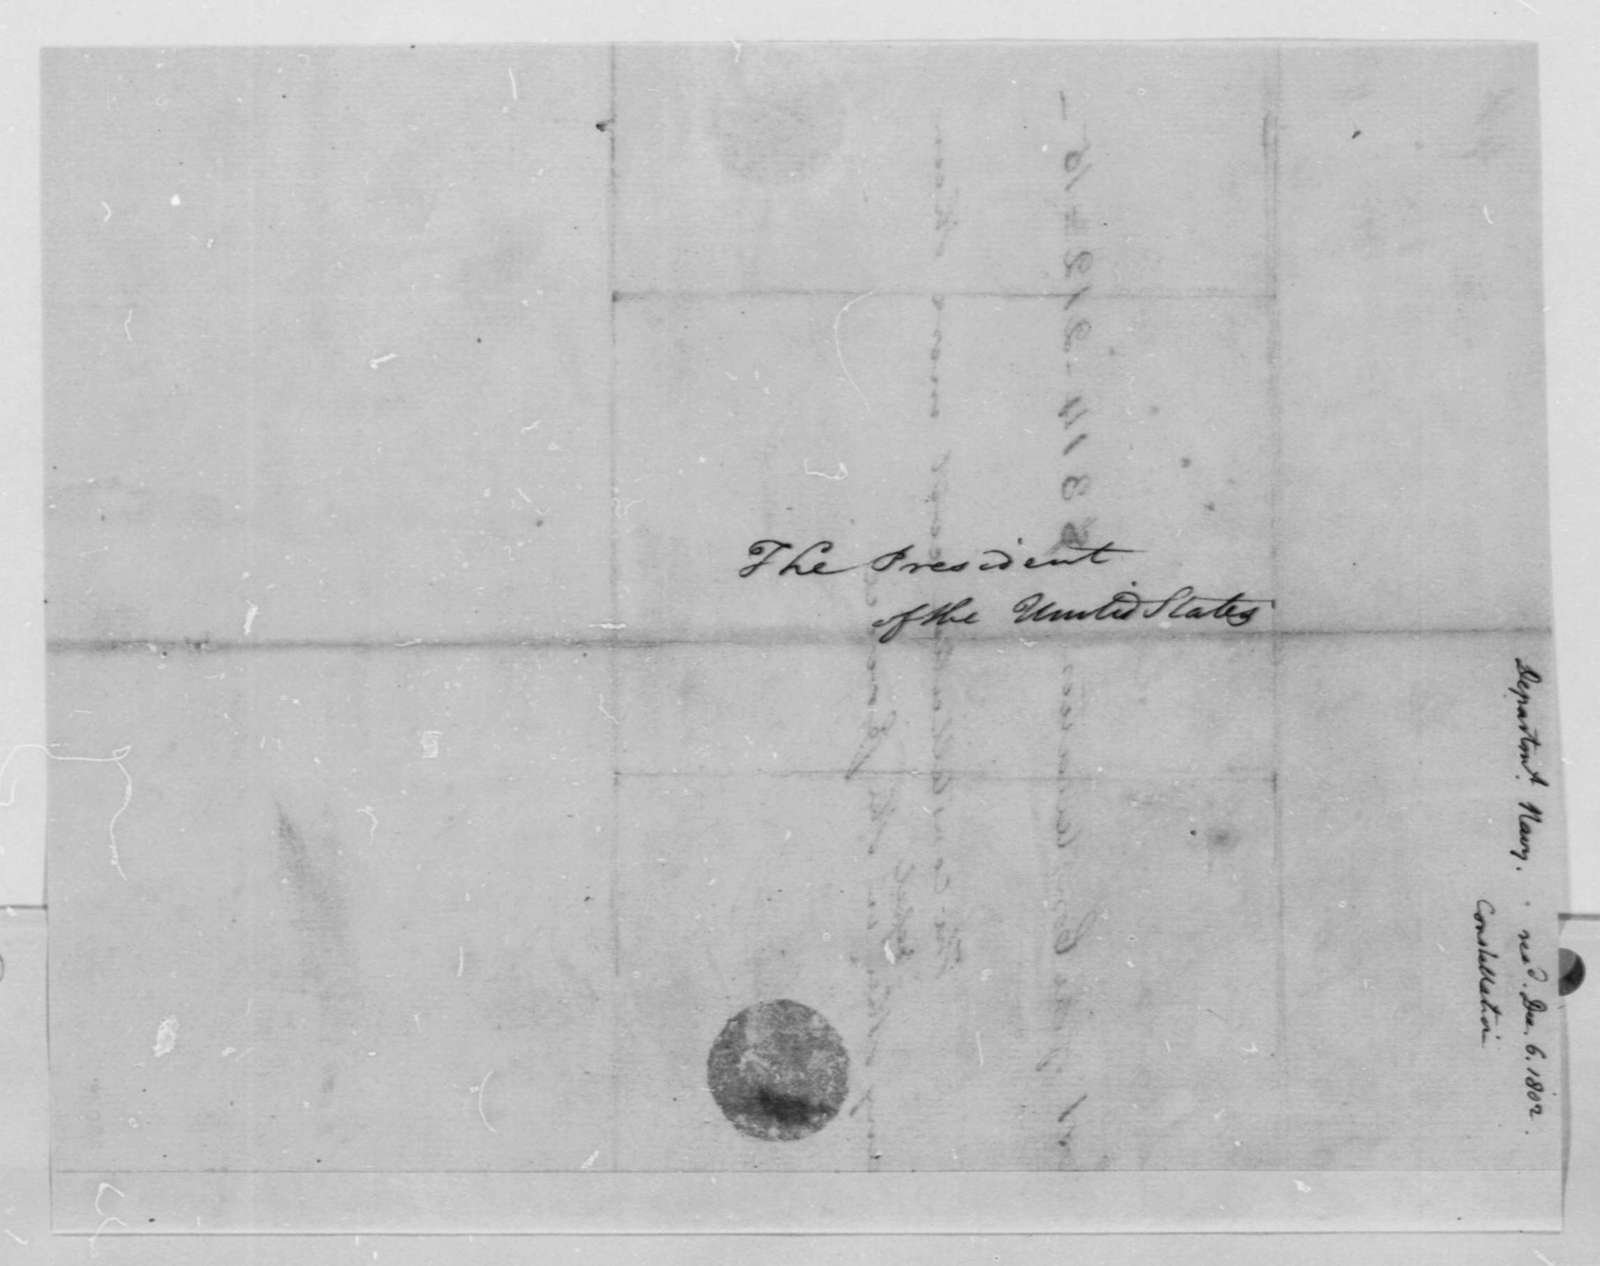 Robert Smith to Thomas Jefferson, December 6, 1802, Cost of Constellation